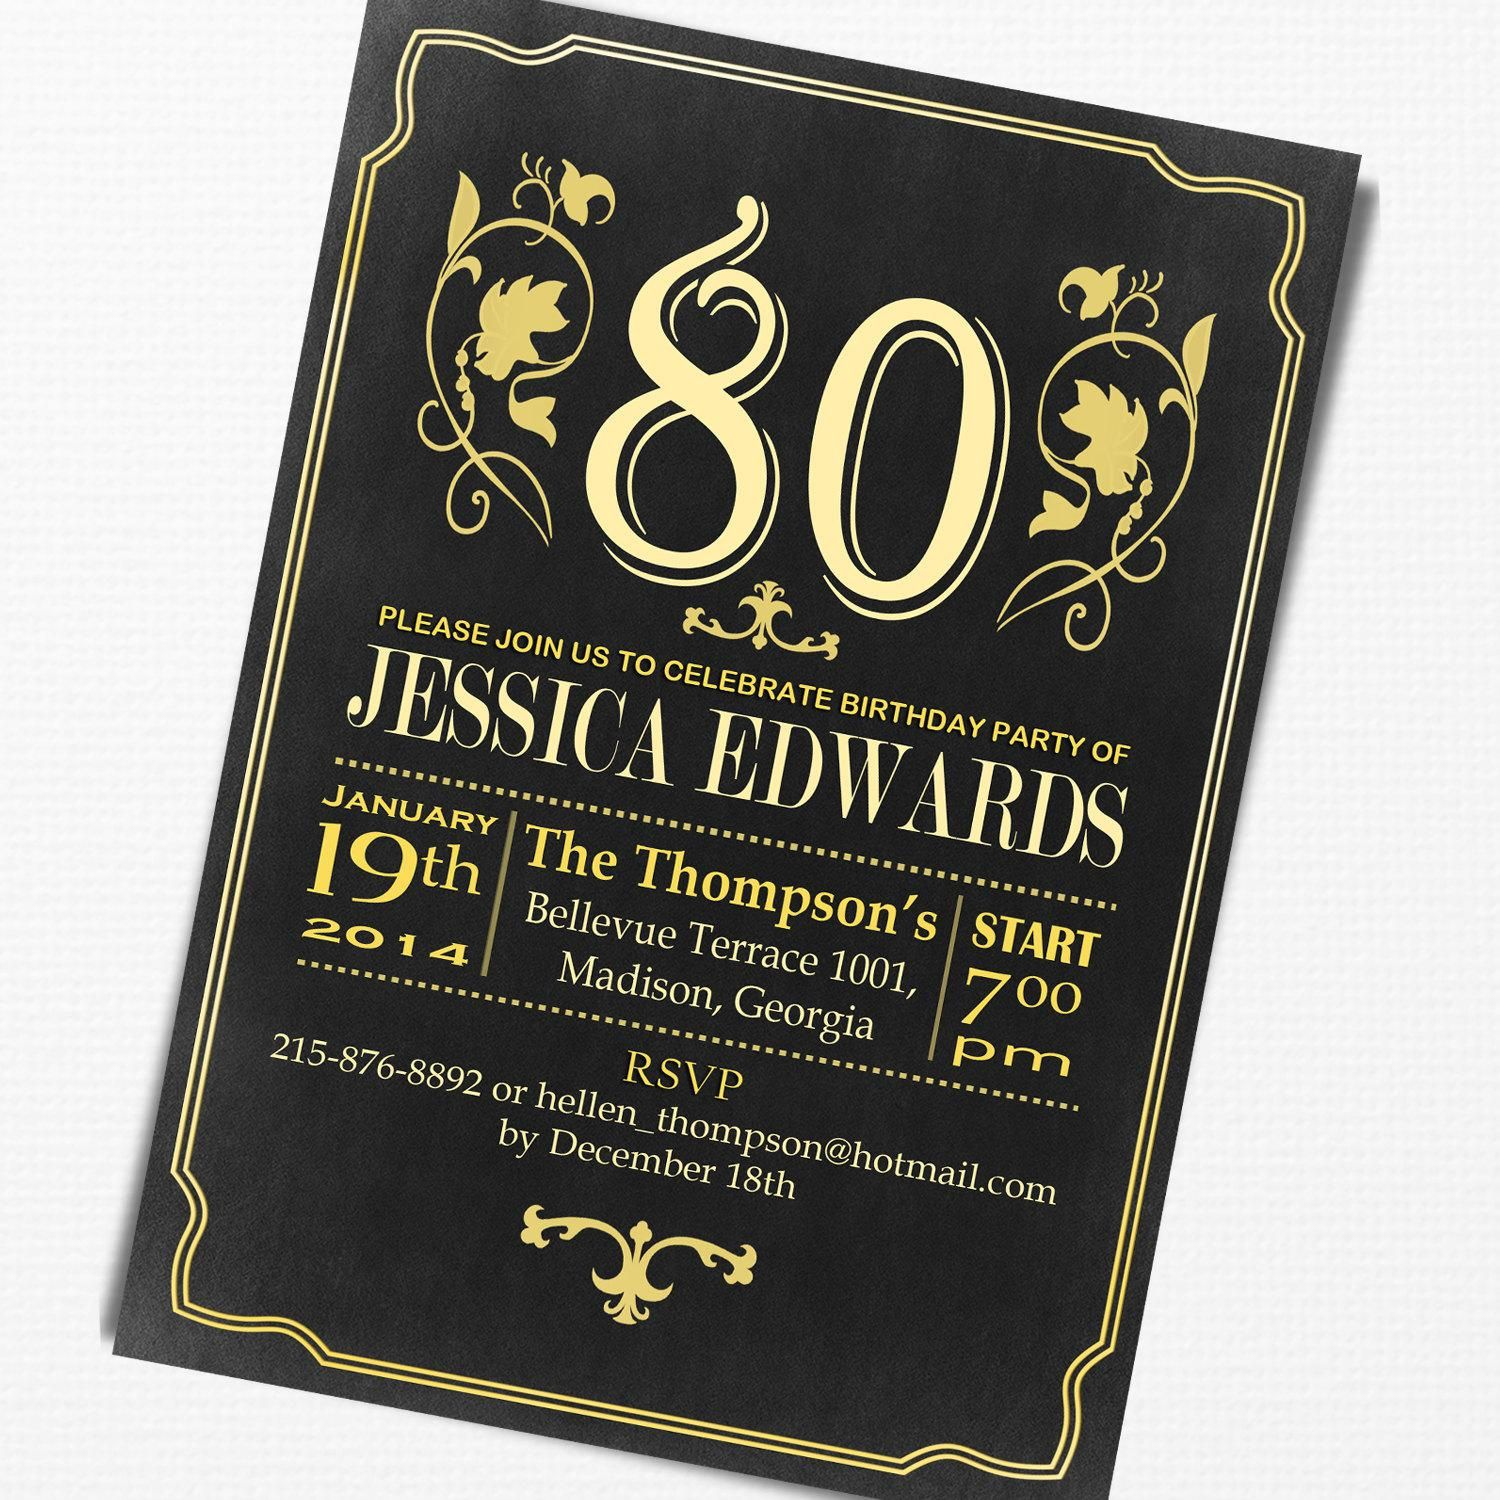 80th Birthday Invitation Free Sample Cards For Elegant Party Party Invite Template 80th Birthday Invitations Birthday Party Invitations Free